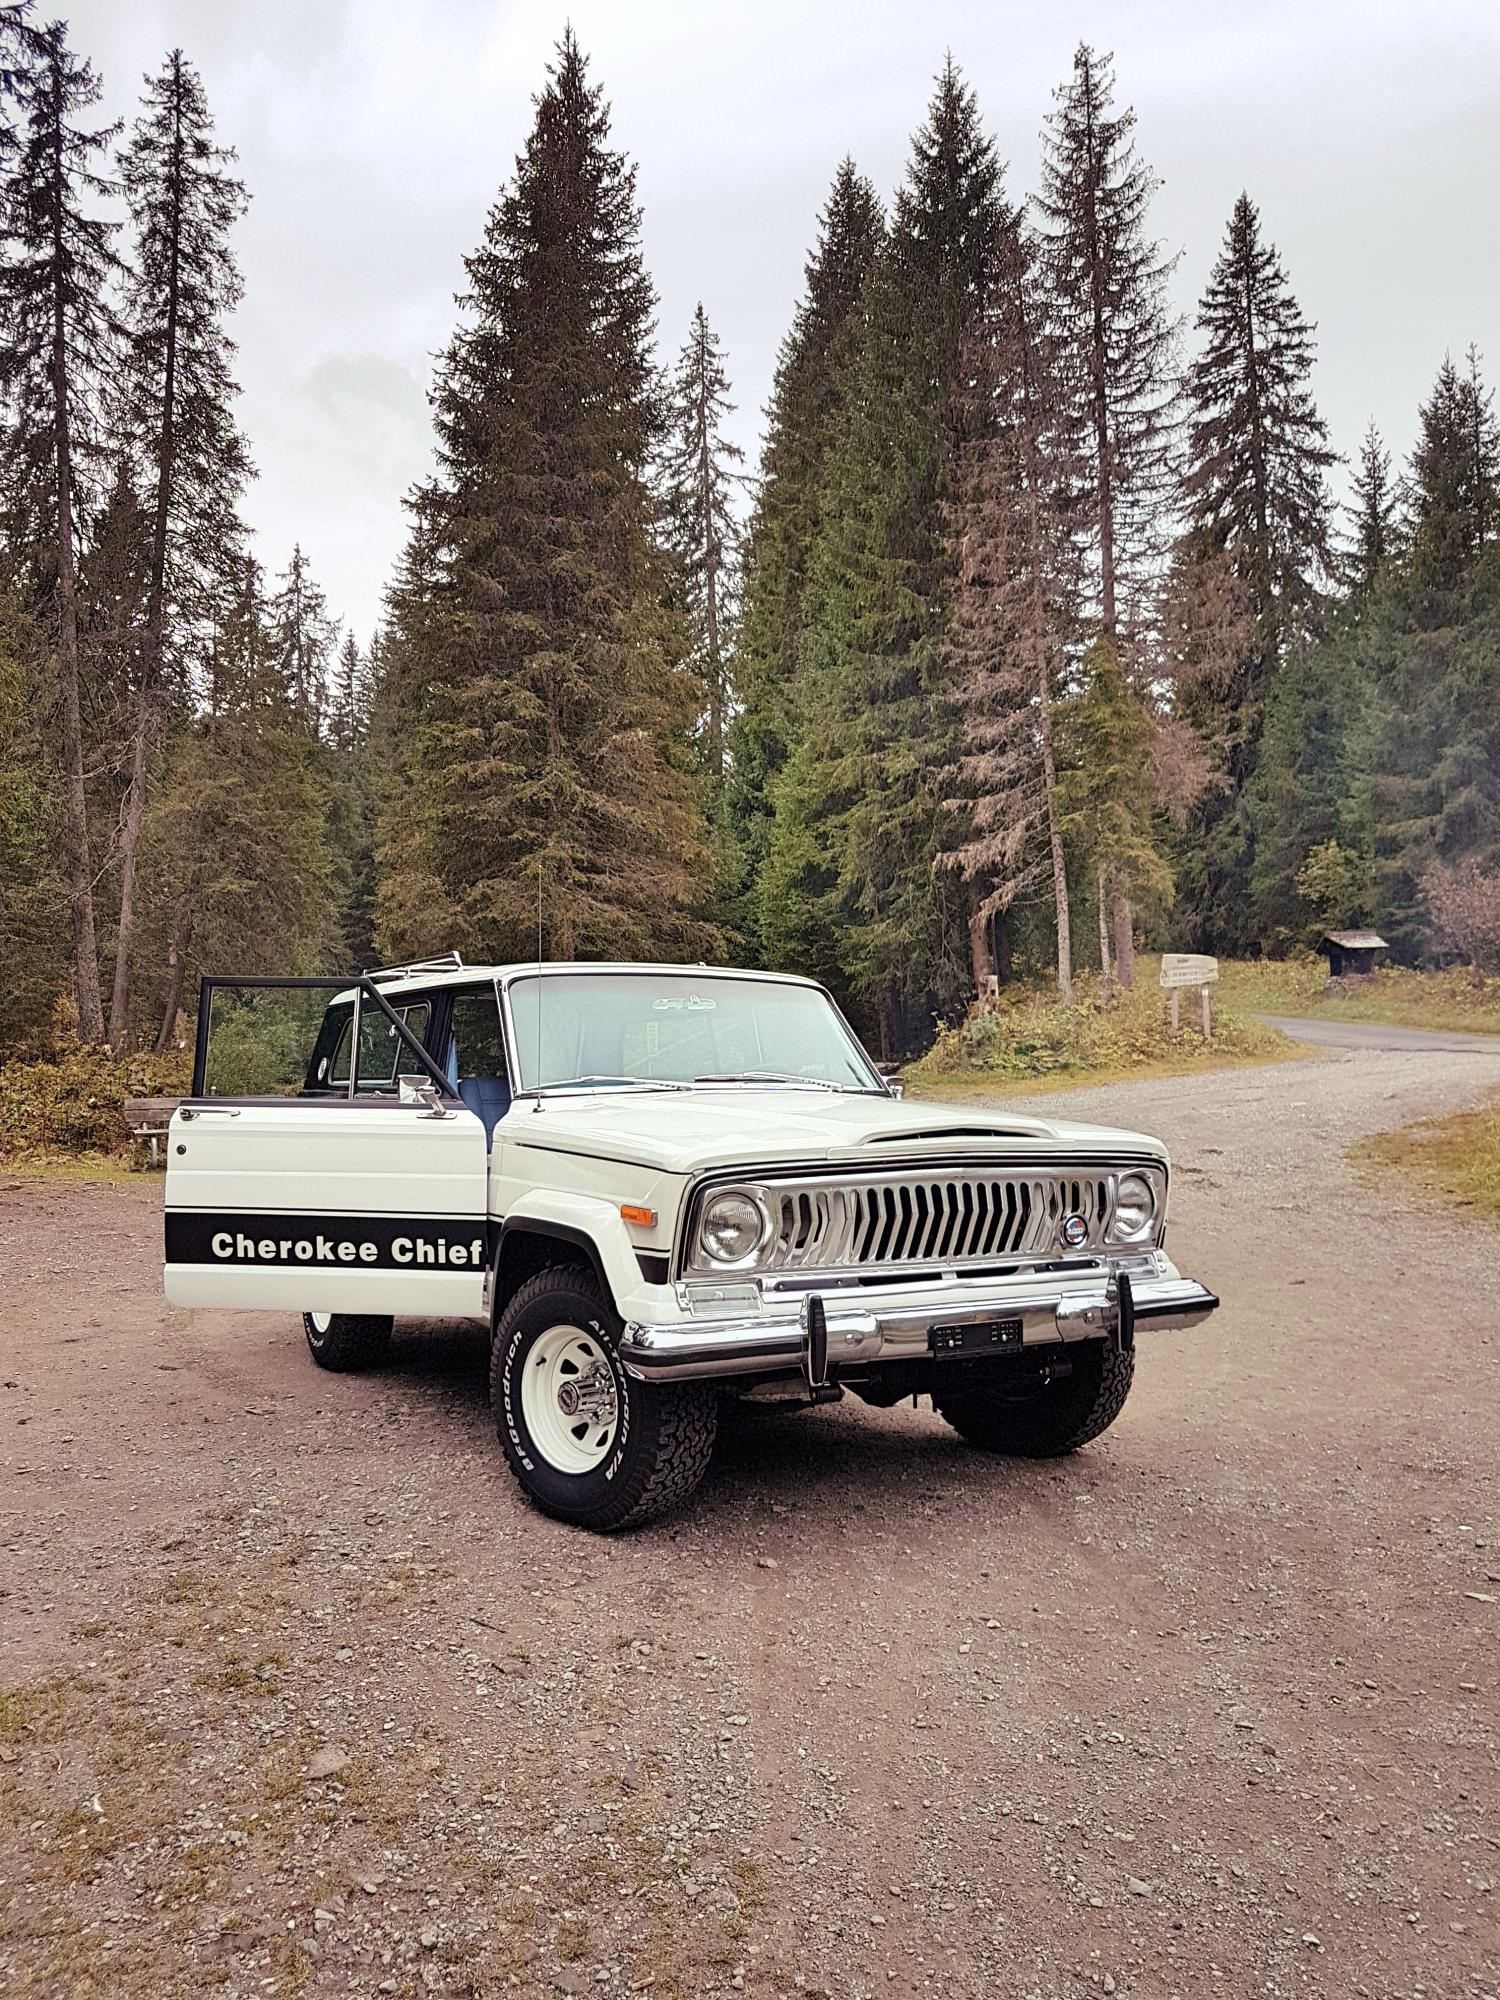 jeep-cherokee-chief-1978-shooting-morgins-switzerland-13.jpg